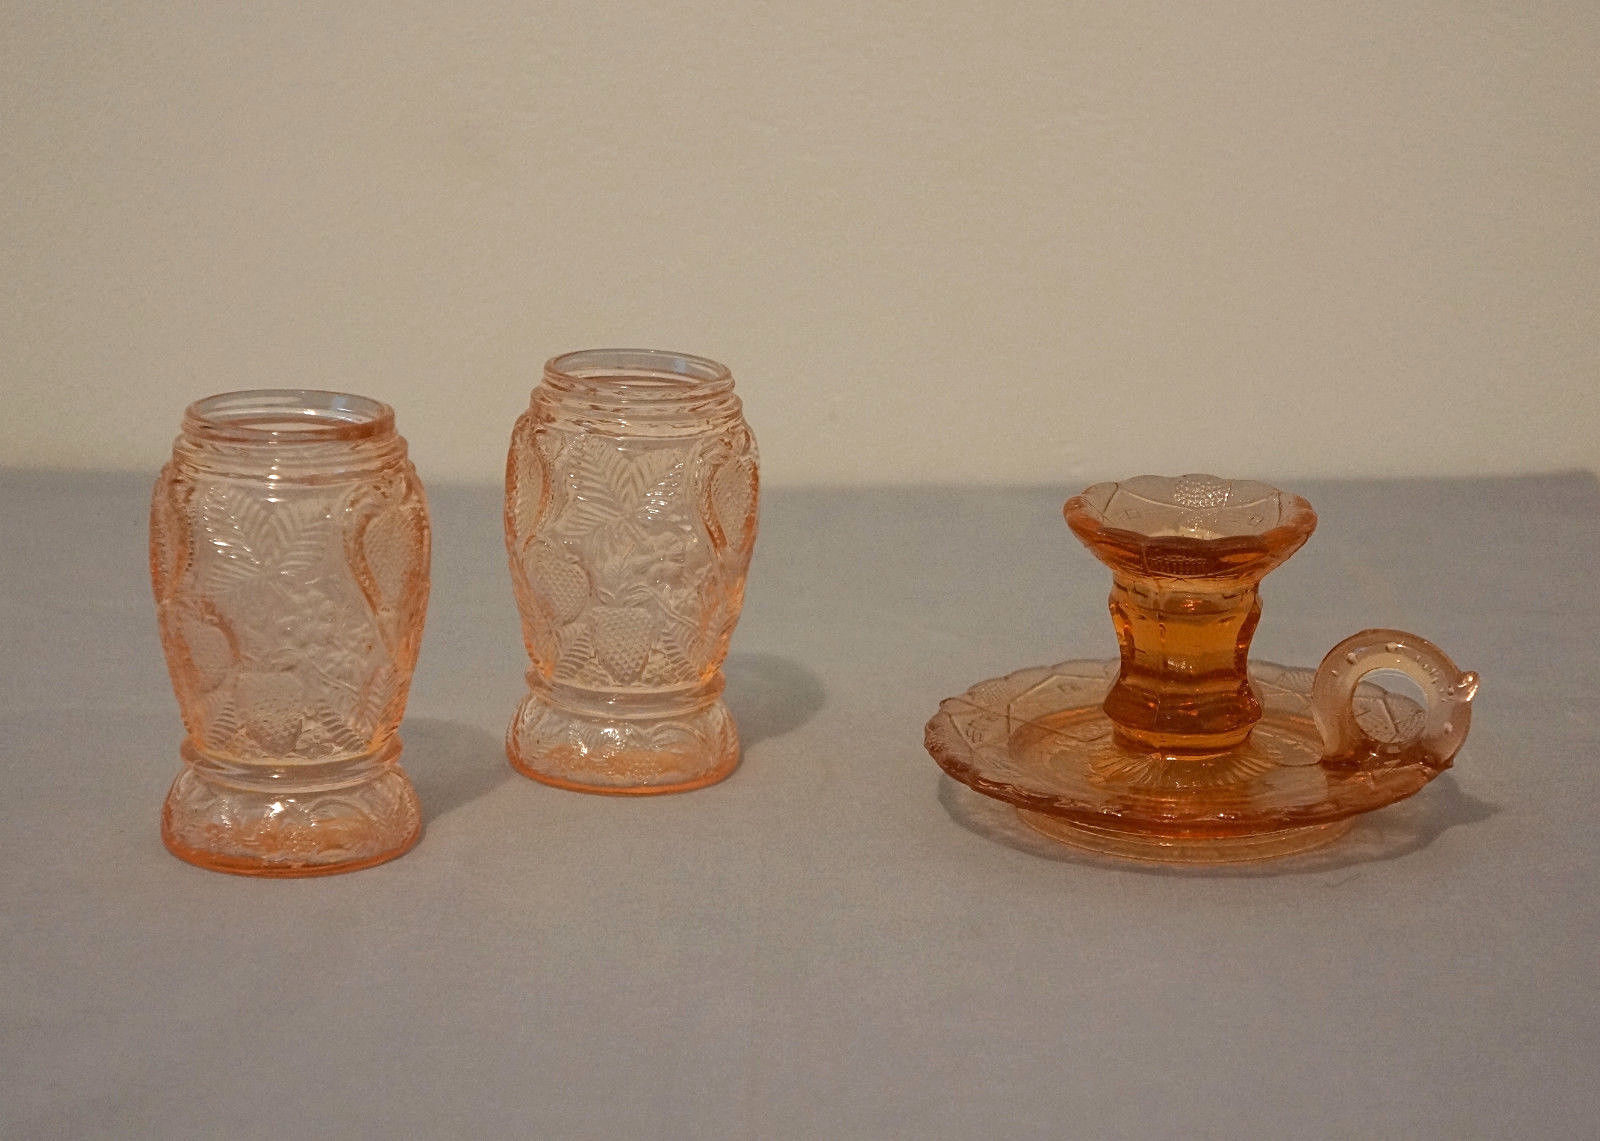 Pink Heisey Glass Candle Stick Holder 2 Pink Salt Pepper Reproduction NO LIDS - $39.95